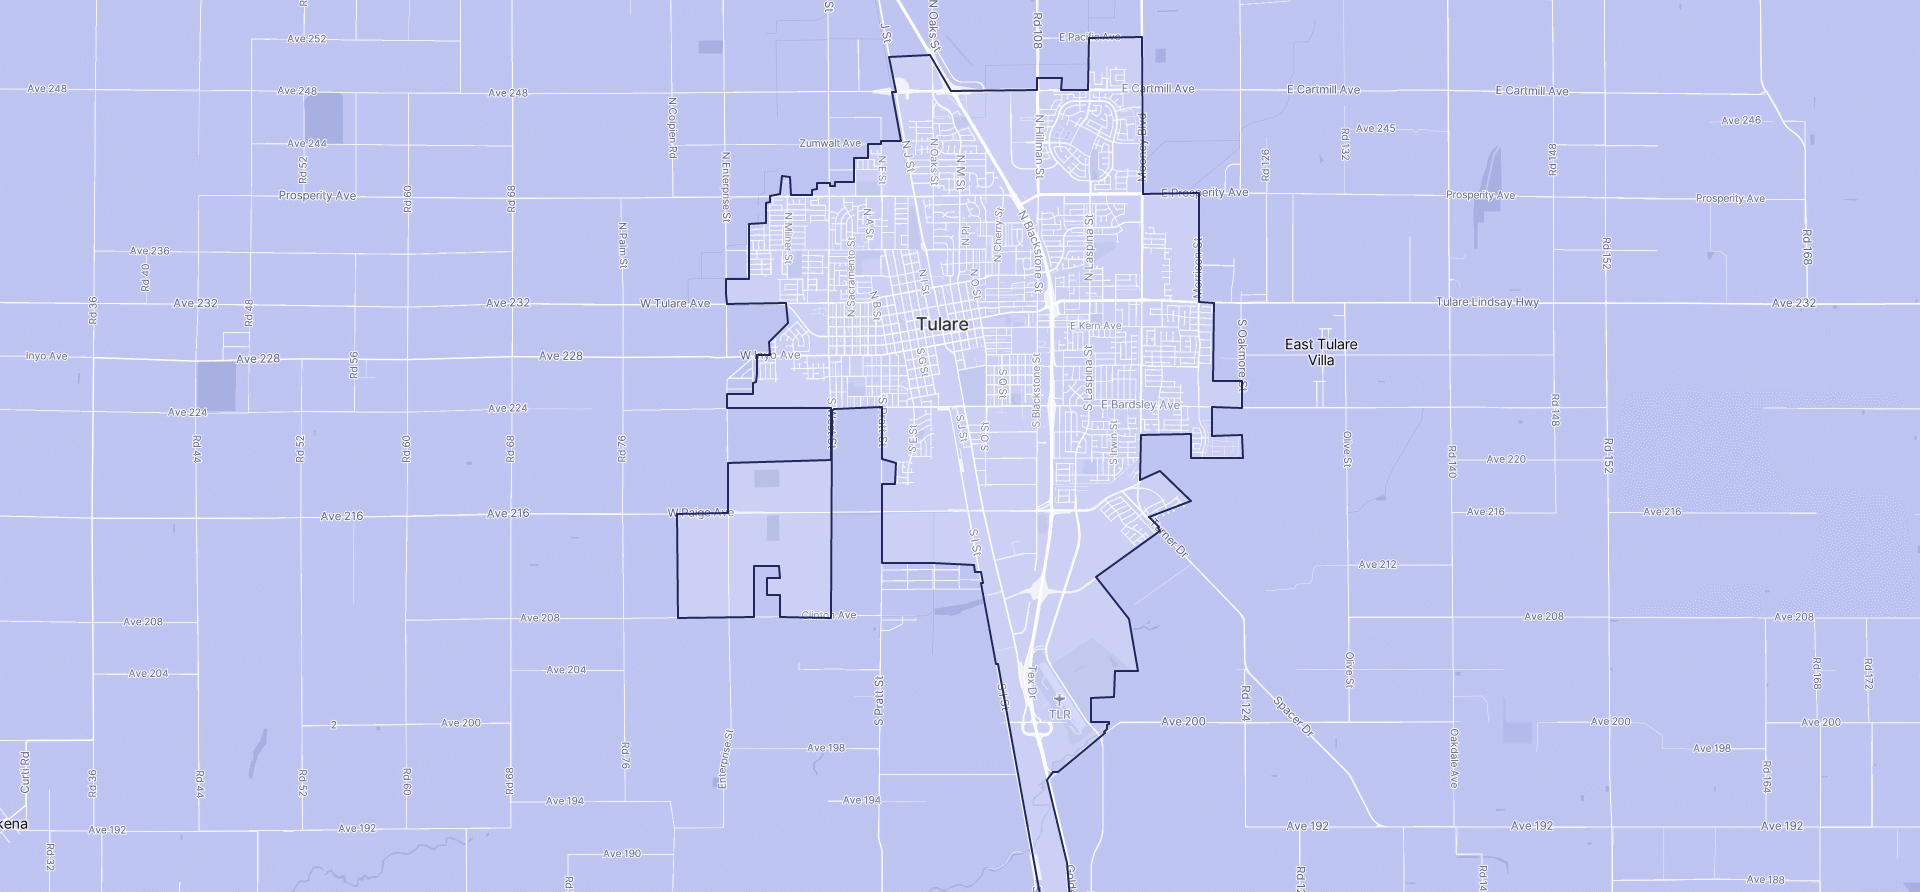 Image of Tulare boundaries on a map.